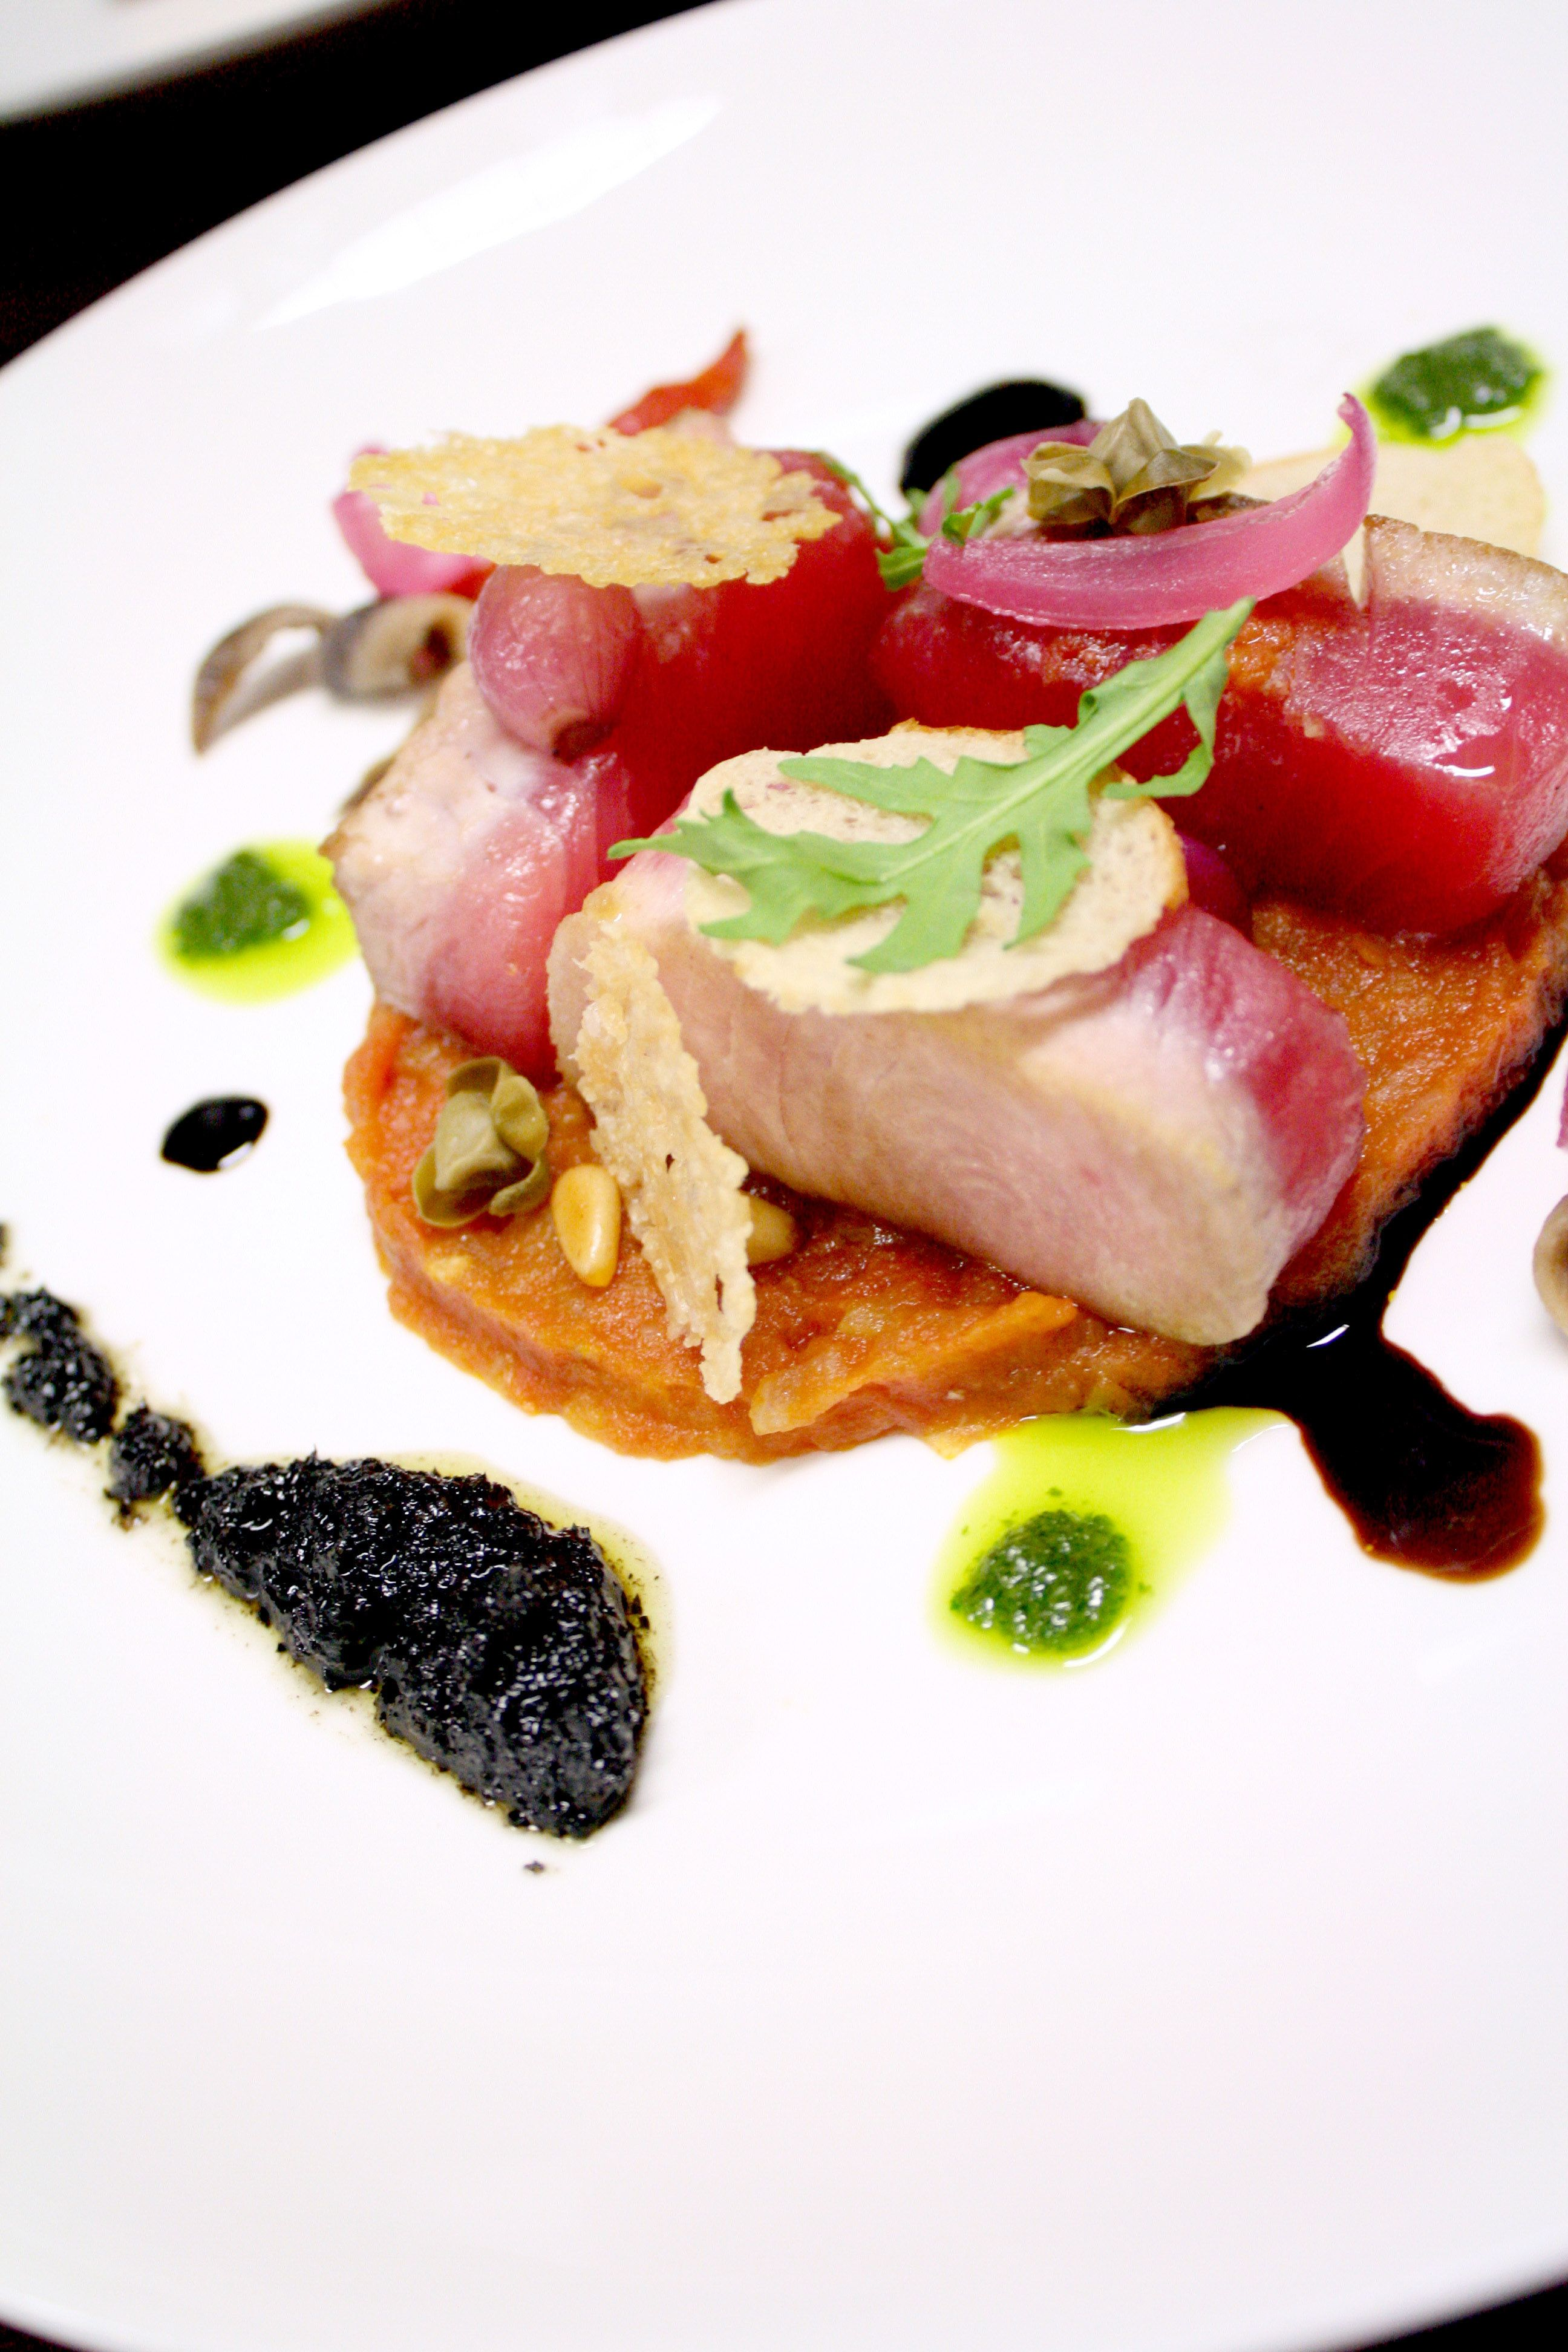 'Tuna Pizza' by Chef Nicolas Isnard. From the Michelin star event at Mandarin Oriental Hotel, Jakarta (March 2012).